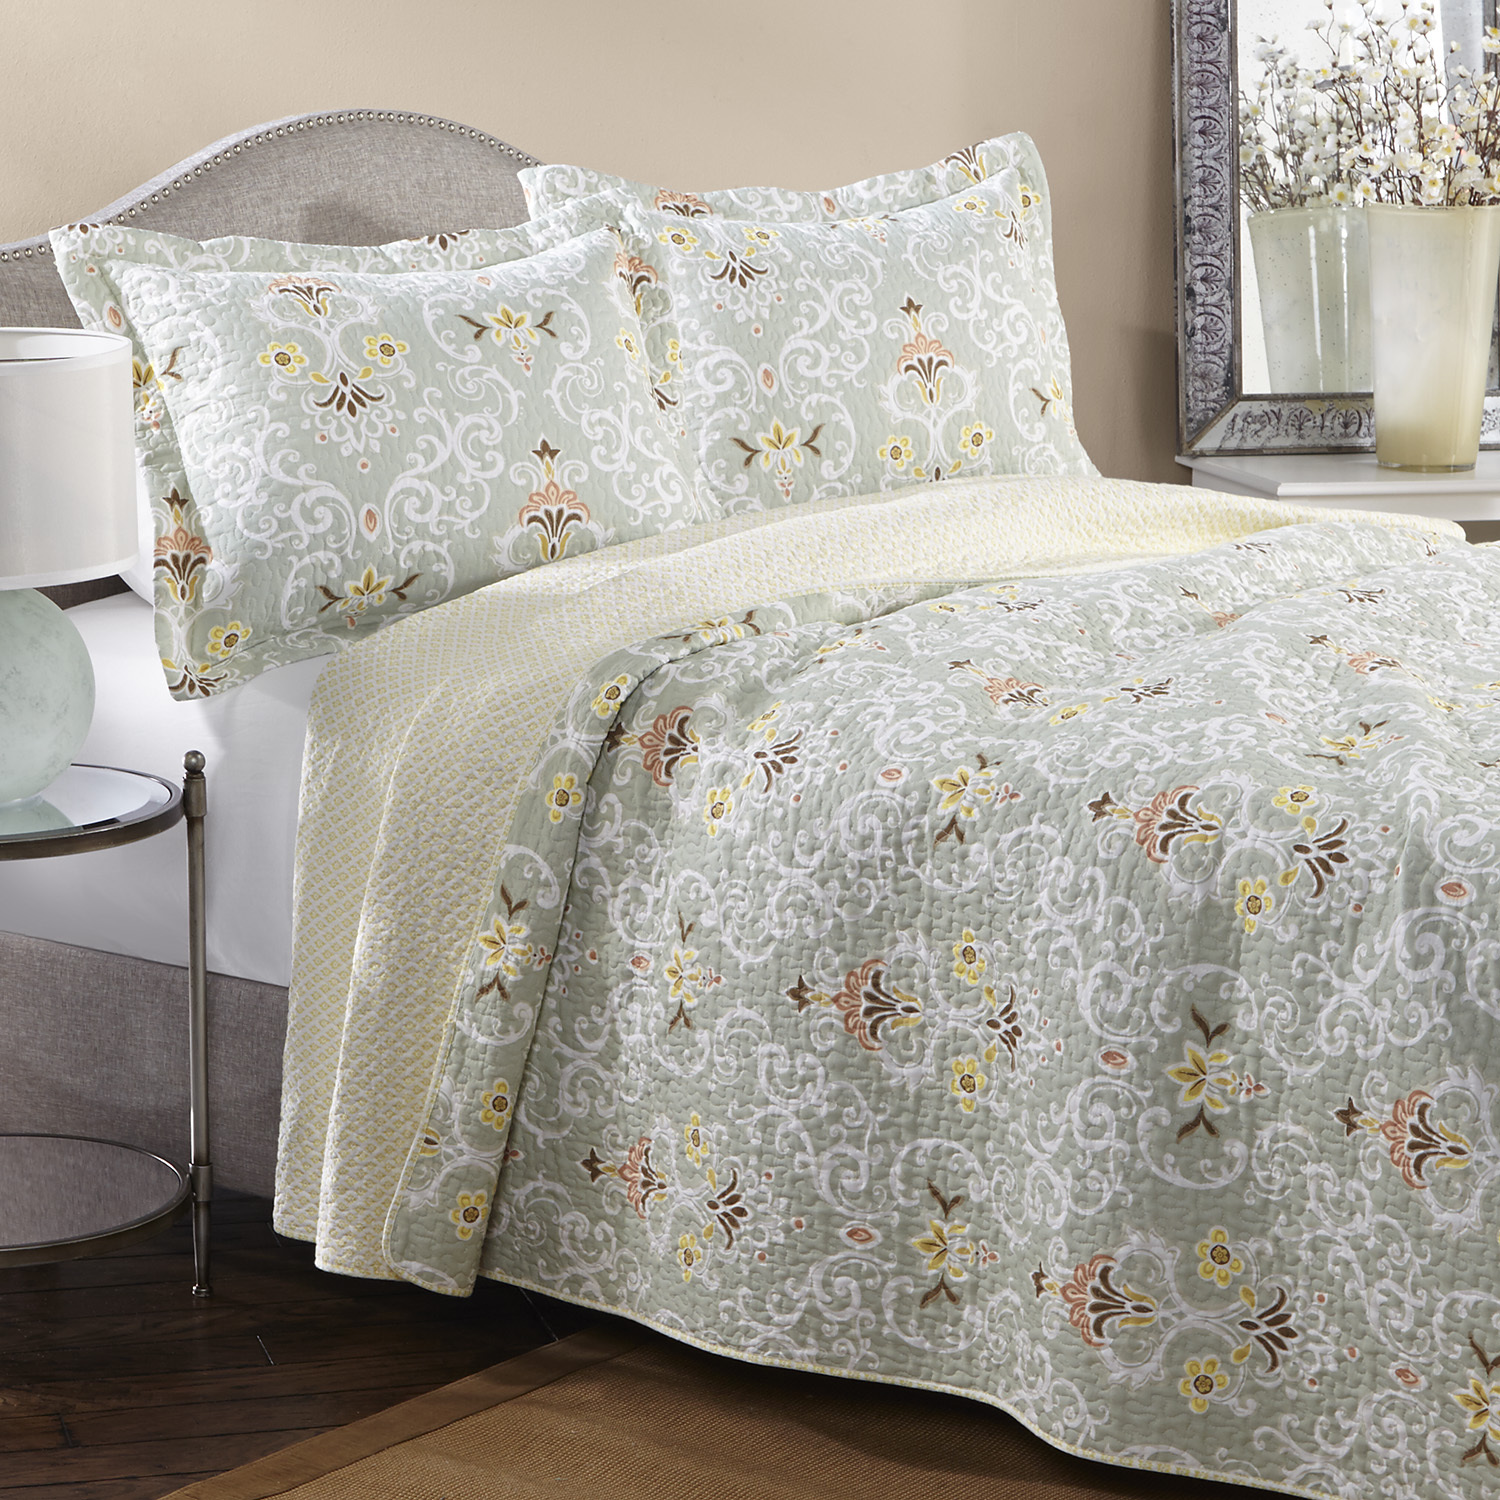 charming laura ashley bedding in grey and flowers motif o wooden floor plus nightstand and table standing lamp for bedroom decor ideas